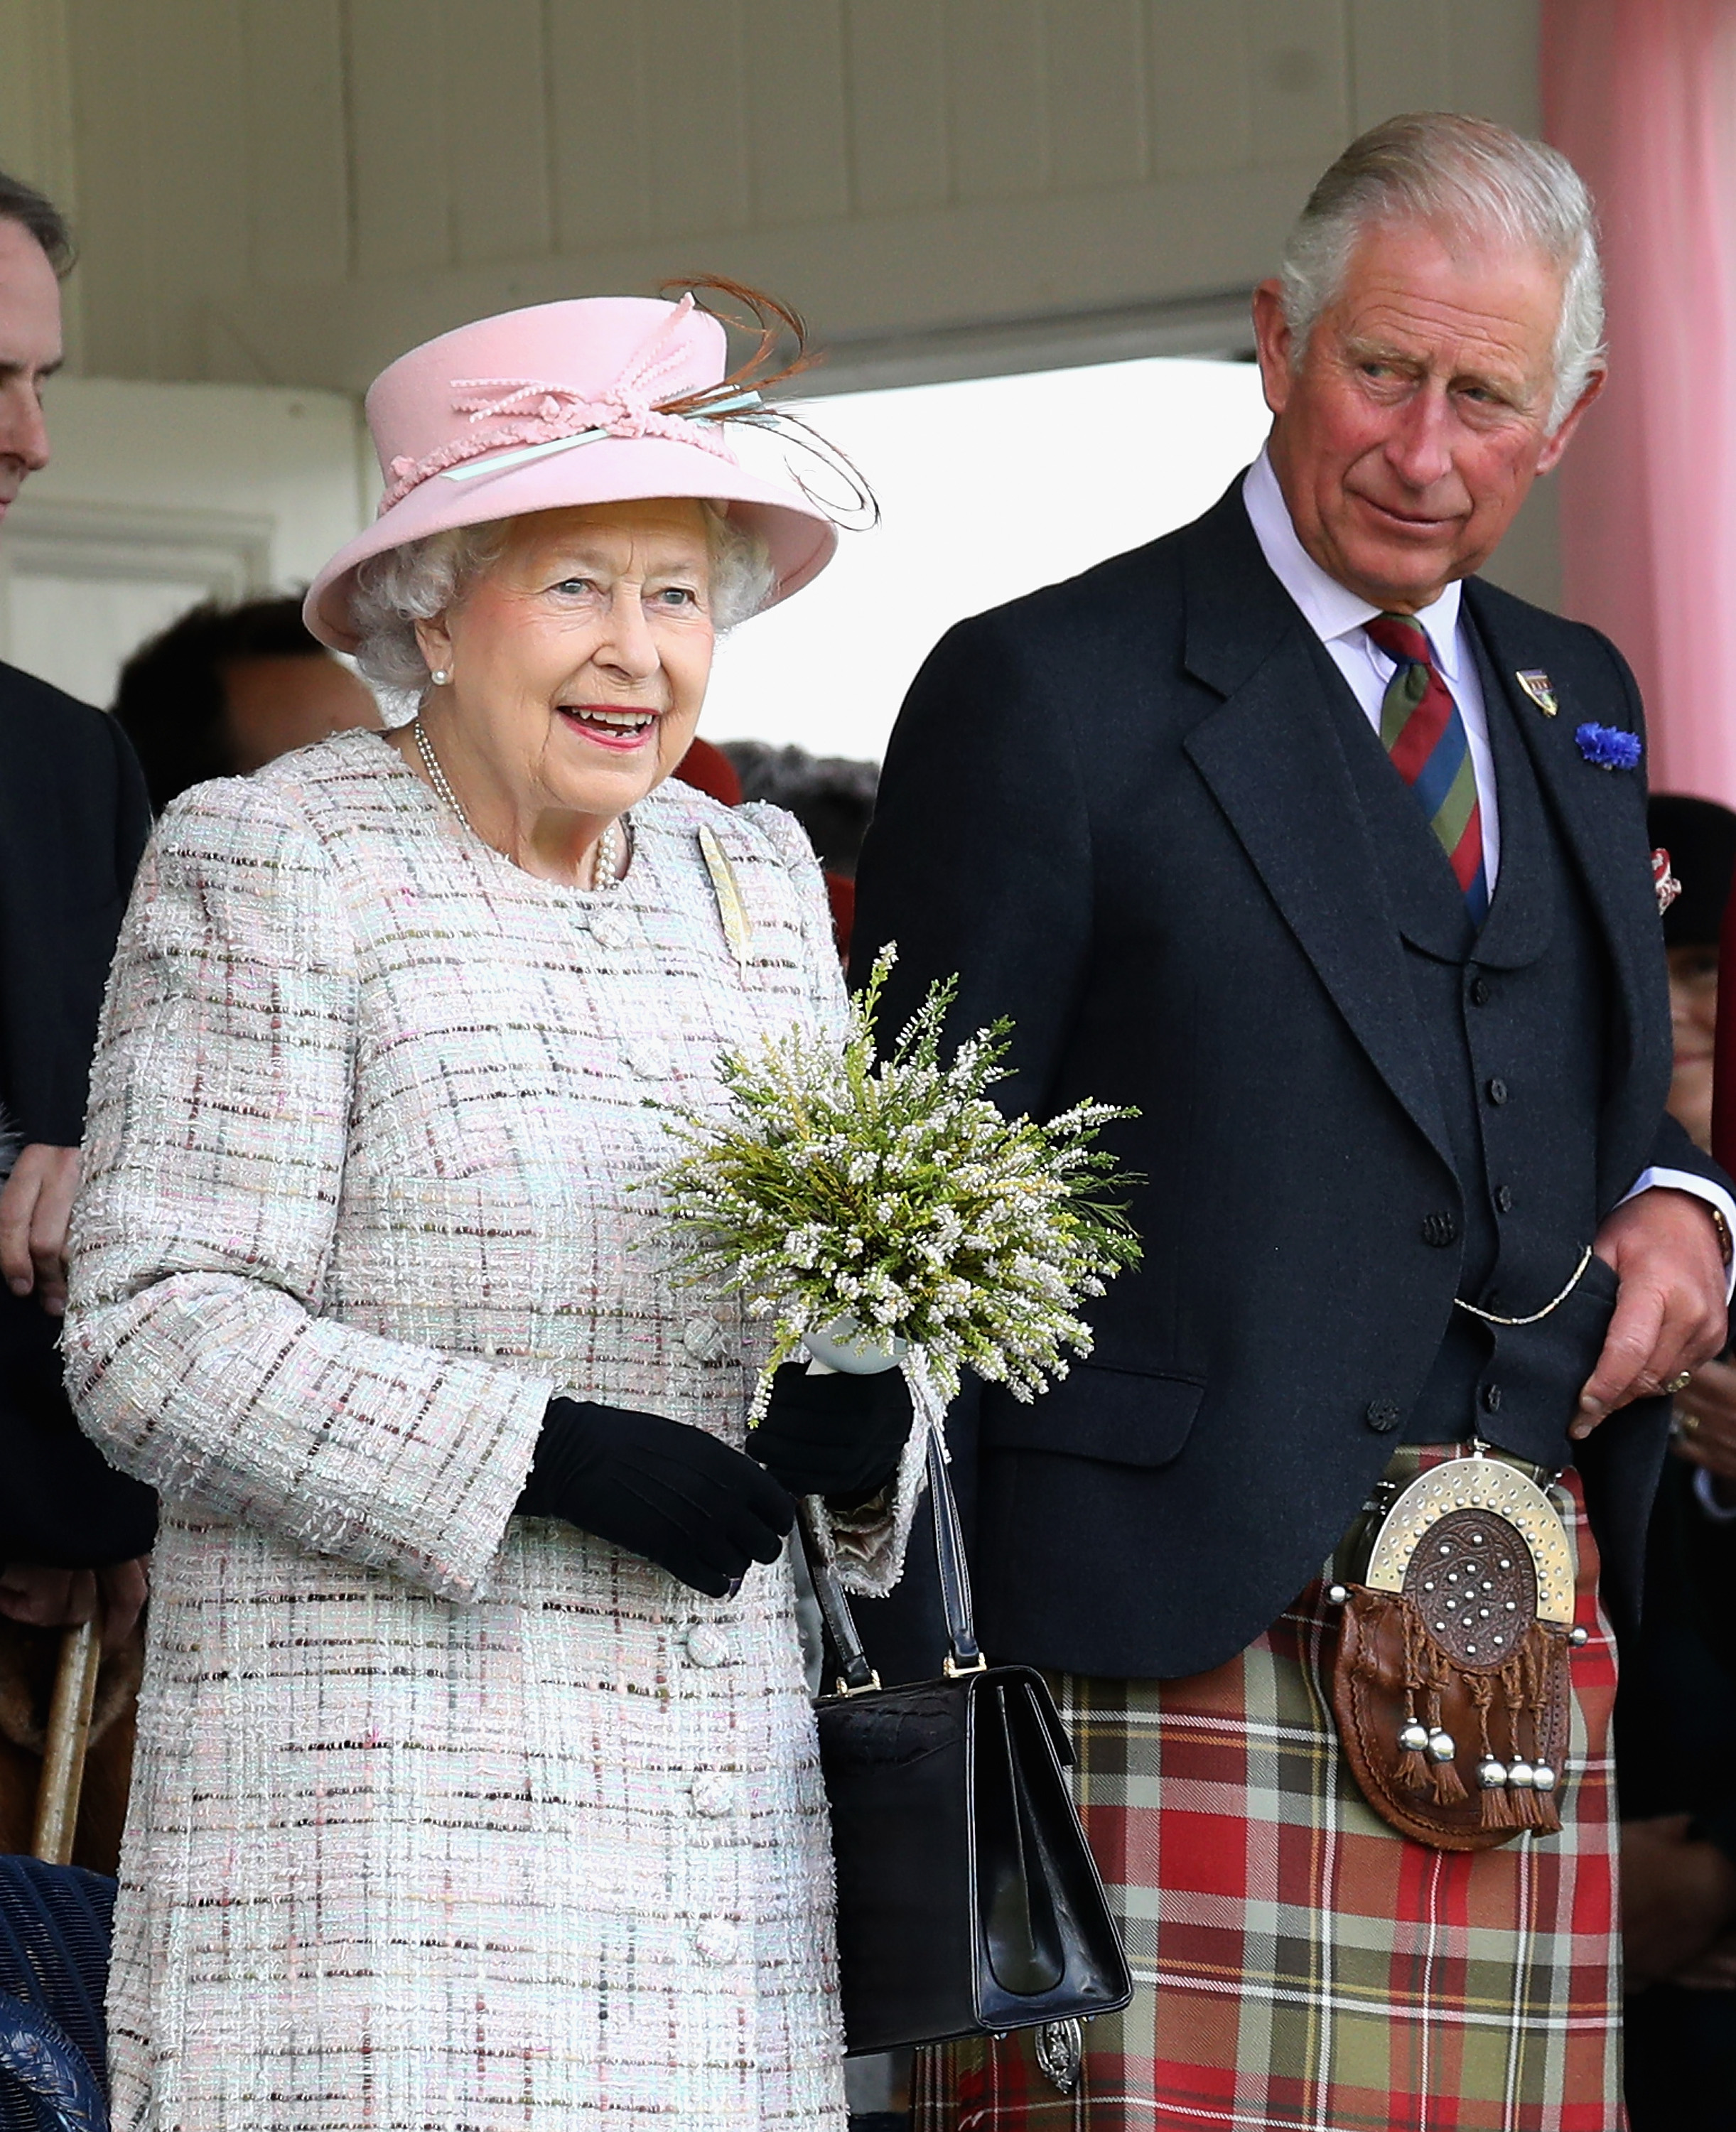 Queen Elizabeth II and Prince Charles, Prince of Wales watch the 2017 Braemar Gathering at The Princess Royal and Duke of Fife Memorial Park on September 2, 2017 in Braemar, Scotland.